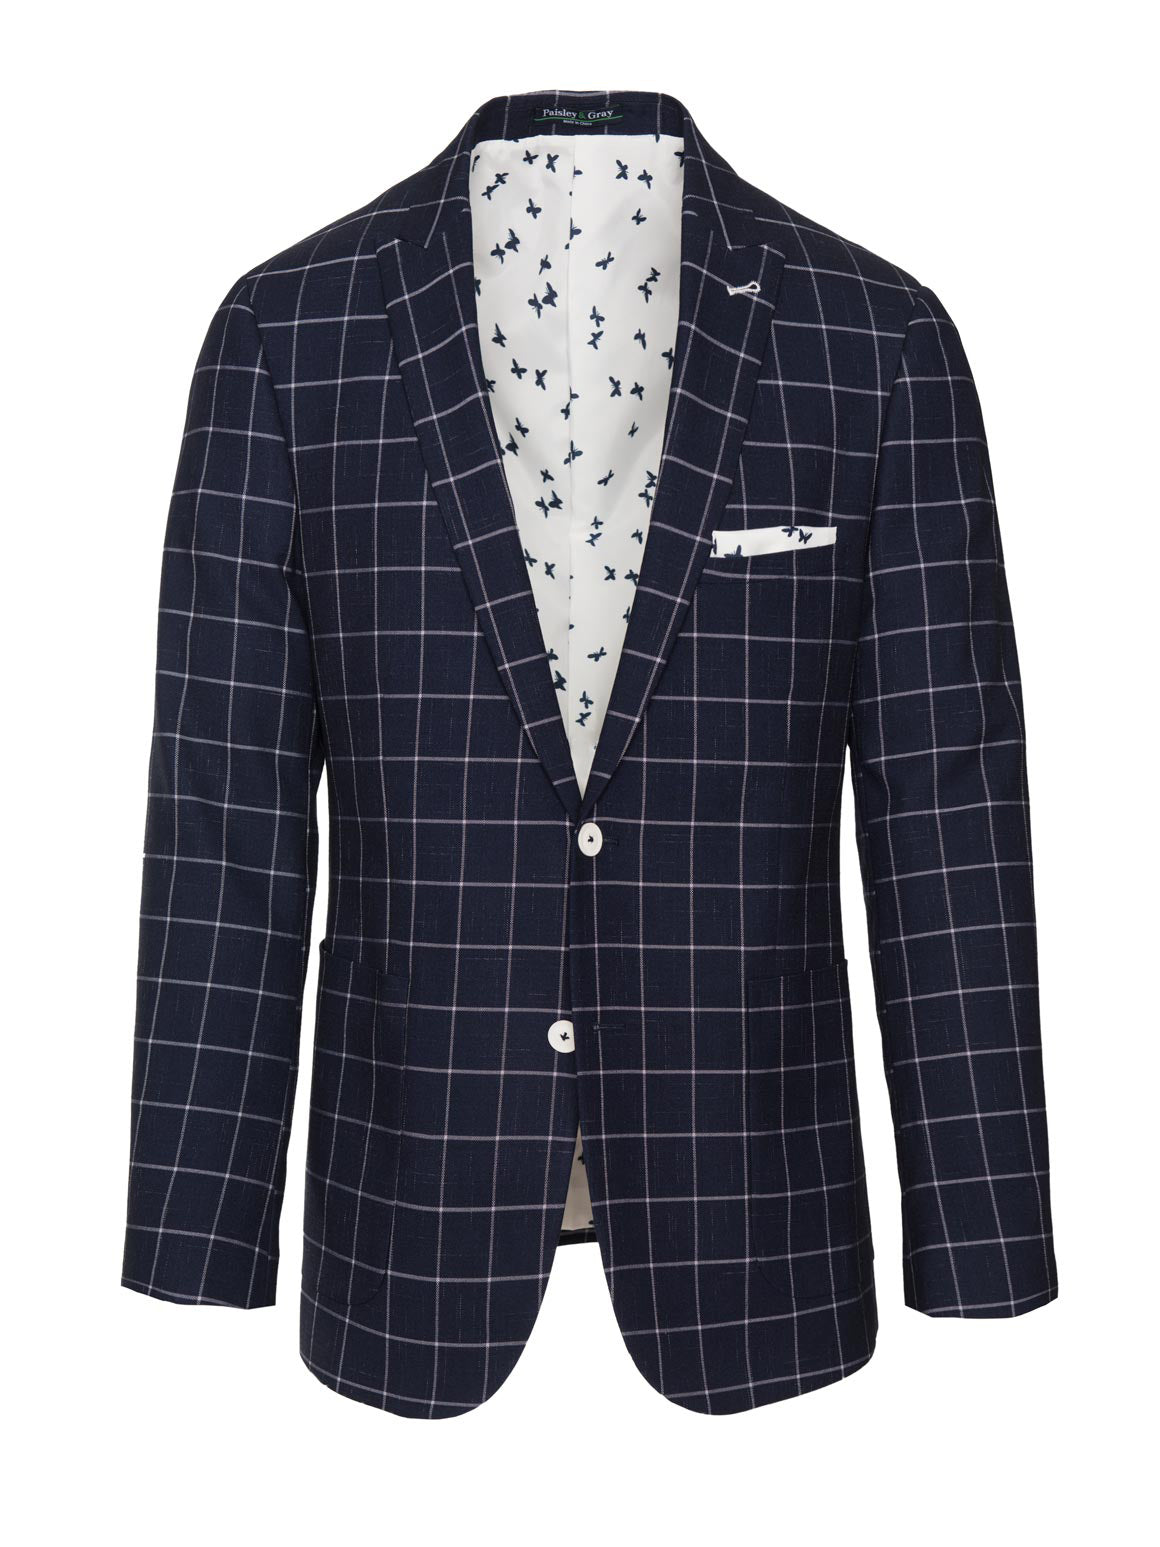 paisley & gray navy & white windowpane slim fit peak lapel suit jacket 2142J echoing white & navy butterfly lining and pocket square white buttons patch pockets